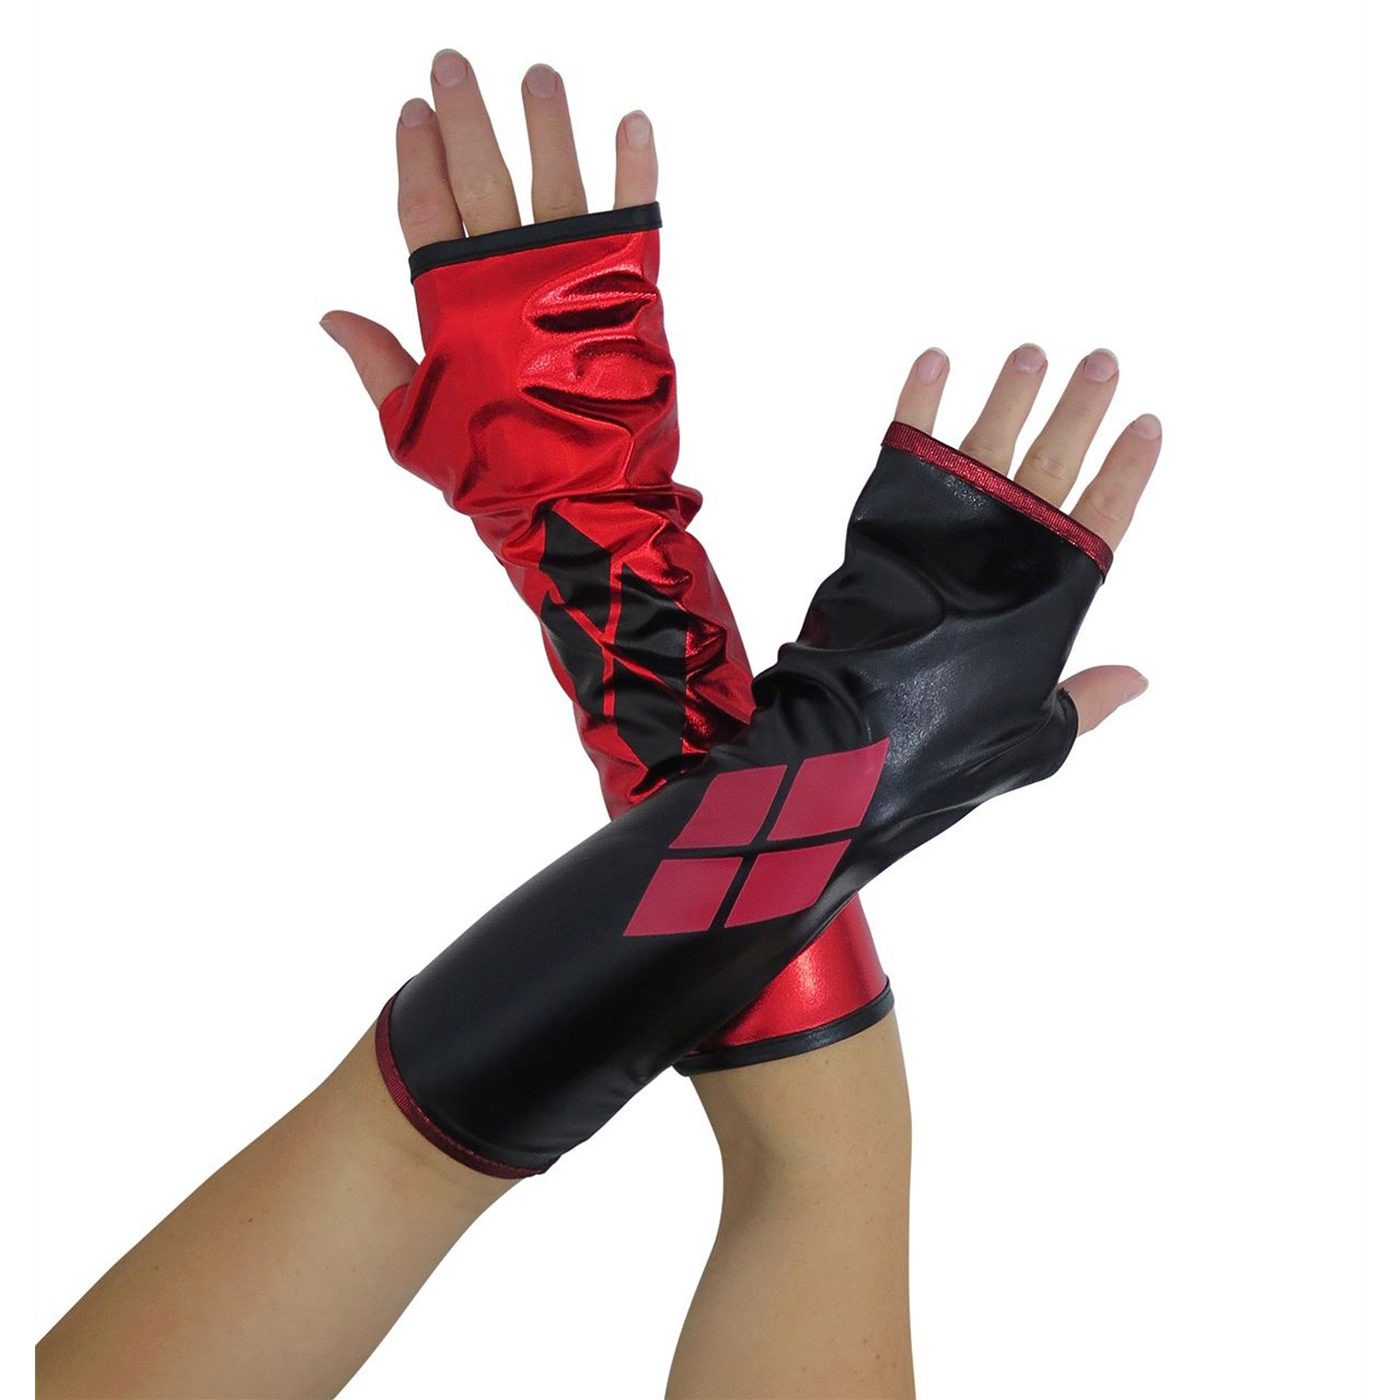 Harley Quinn Costume Gauntlets